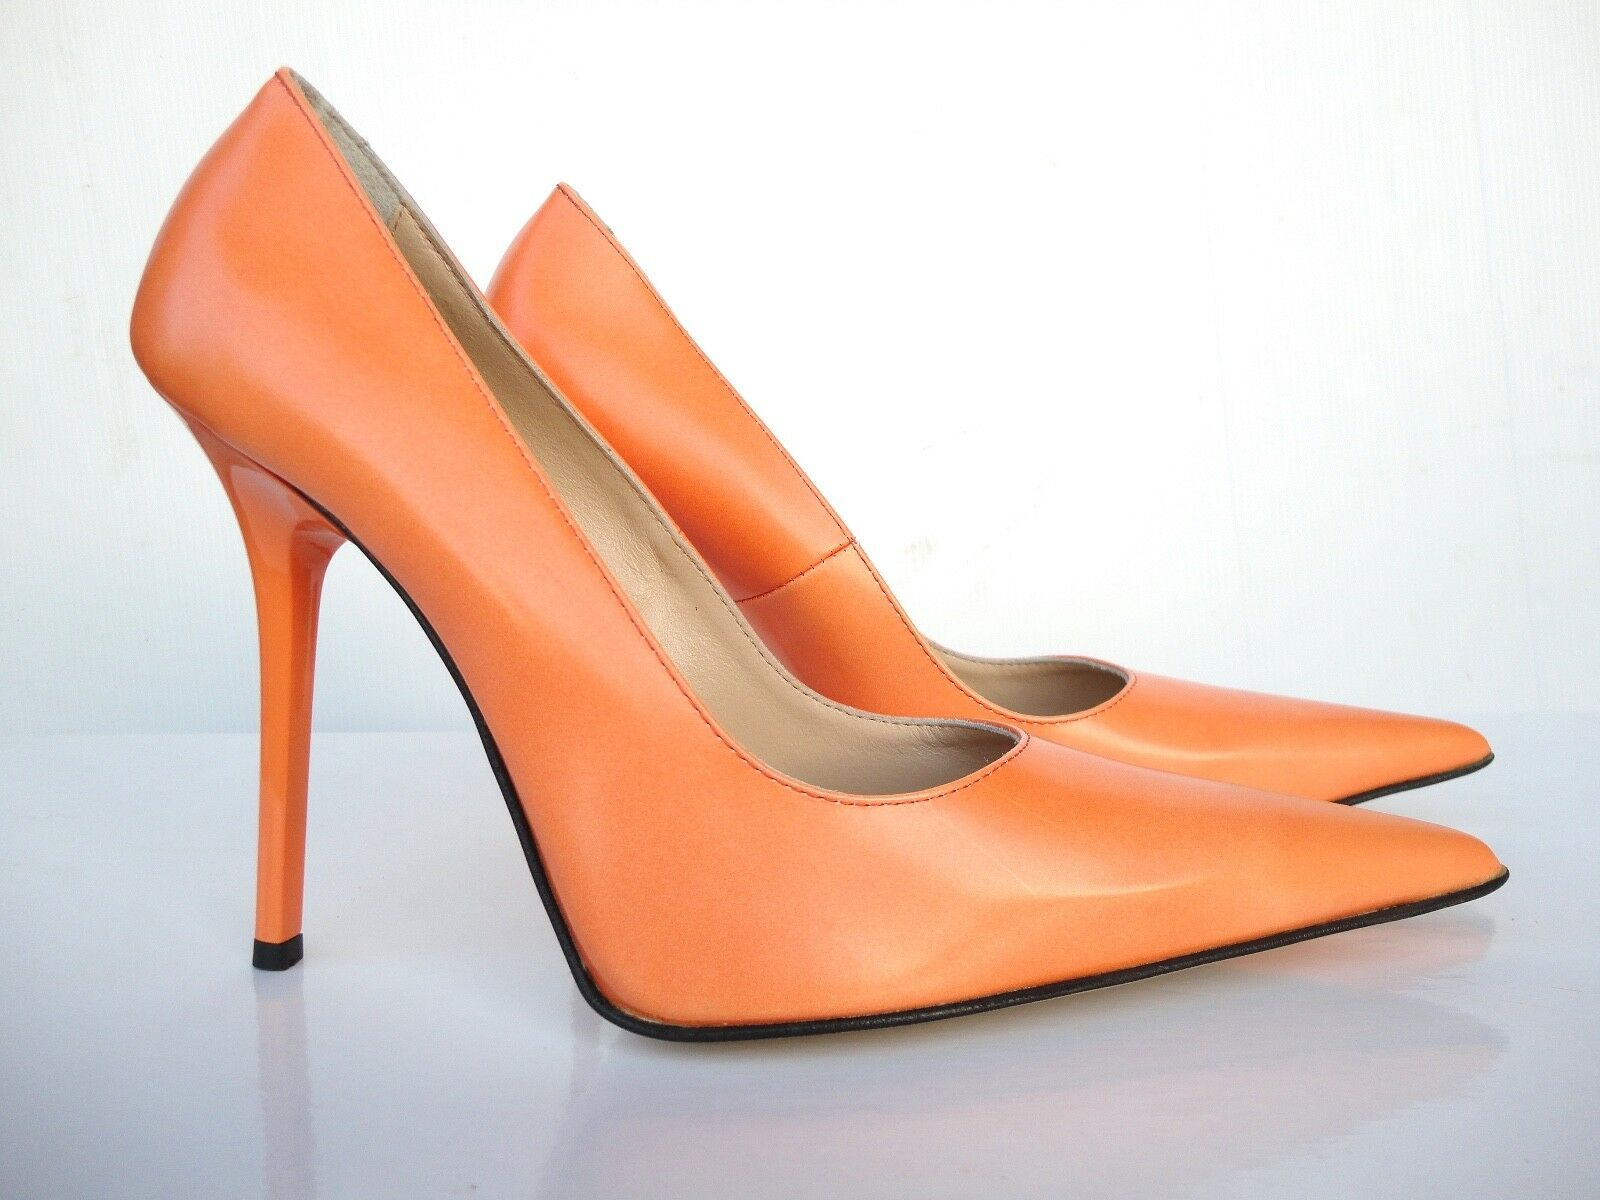 GIOHEL ITALY ITALY ITALY HEELS POINTY TOE NEW PUMPS SCHUHE LEATHER COURT SHOES orange 40 f4bf14